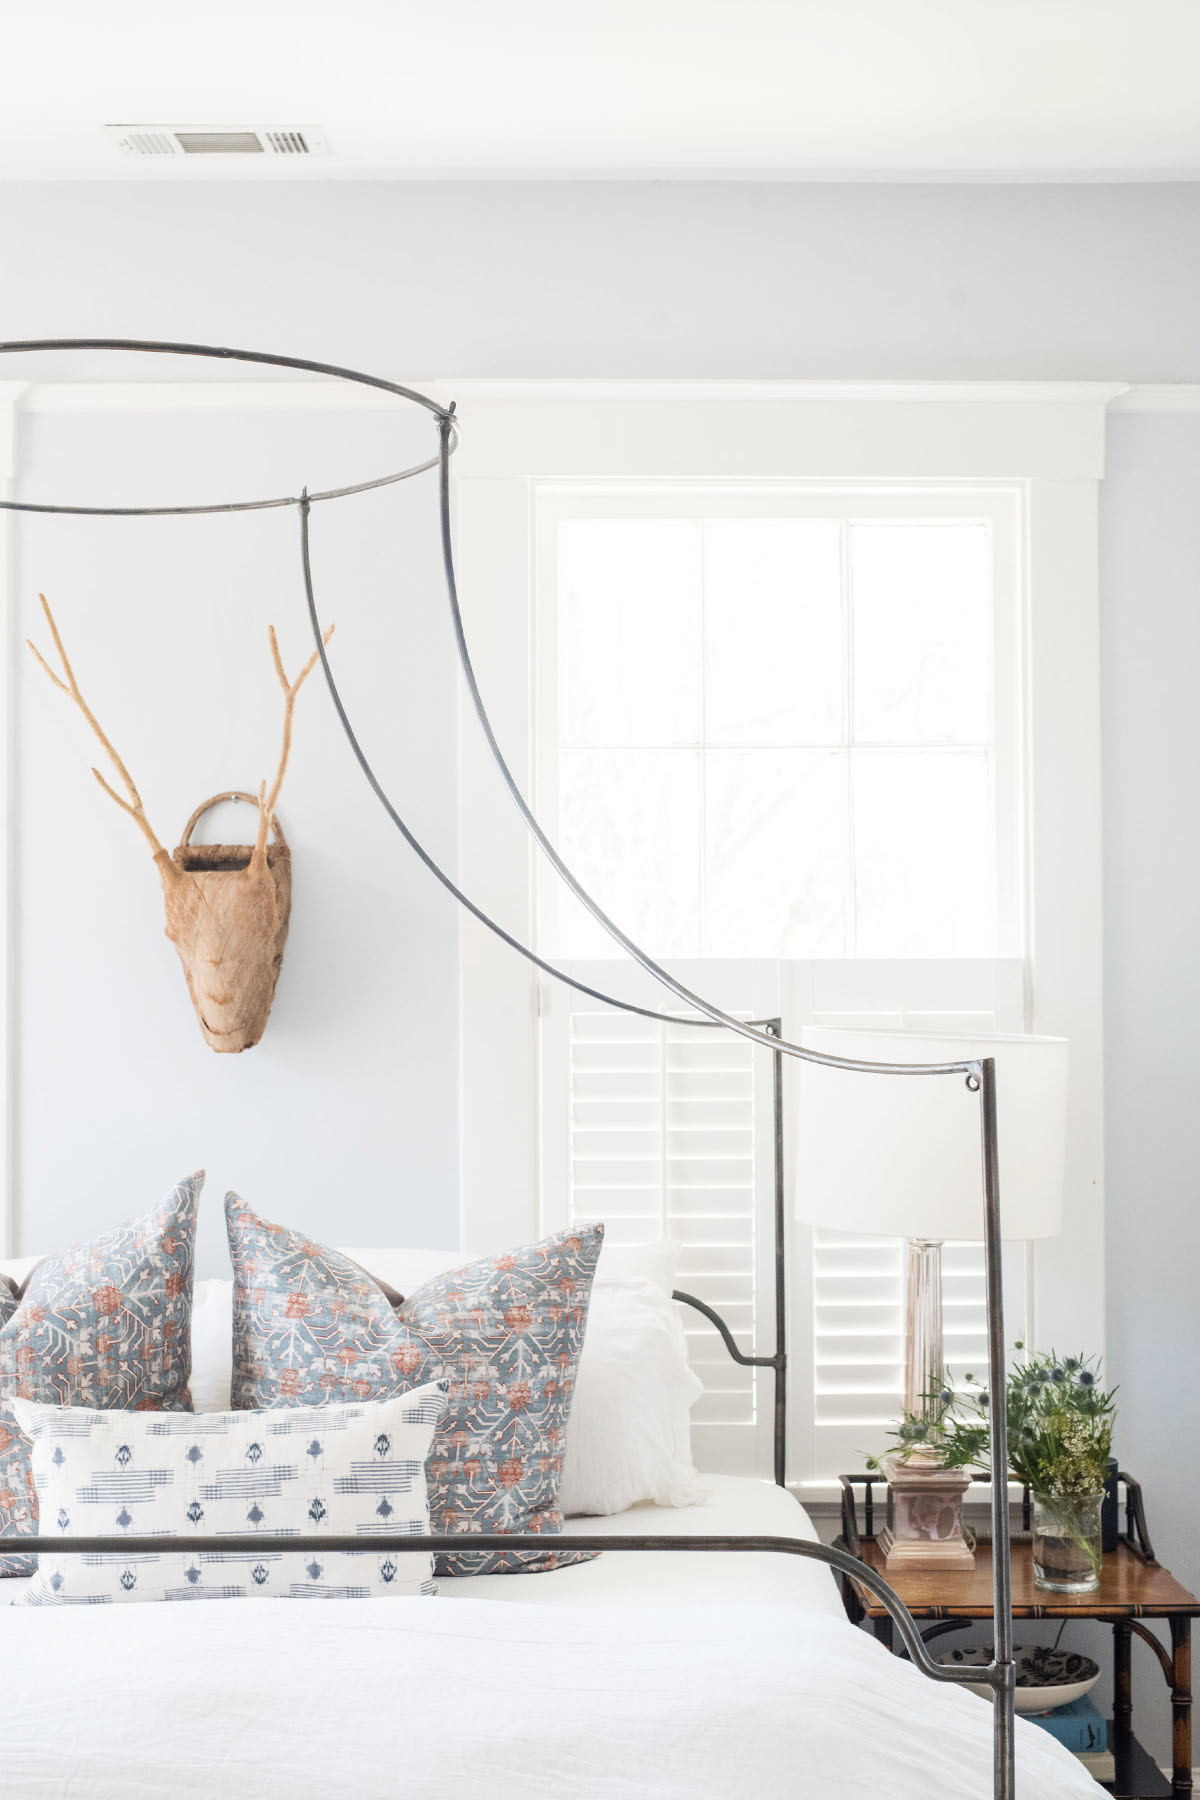 Eichholz opted for a contemporary metal bed frame, from Anthropologie, to avoid obstructing the view from the couple's bedroom window. Sandfly Market Place Decorative Antlers | Zak and Fox Assorted Pillows | One Kings Lane Bedding | Memoky Side Tables | Circa Lamp.